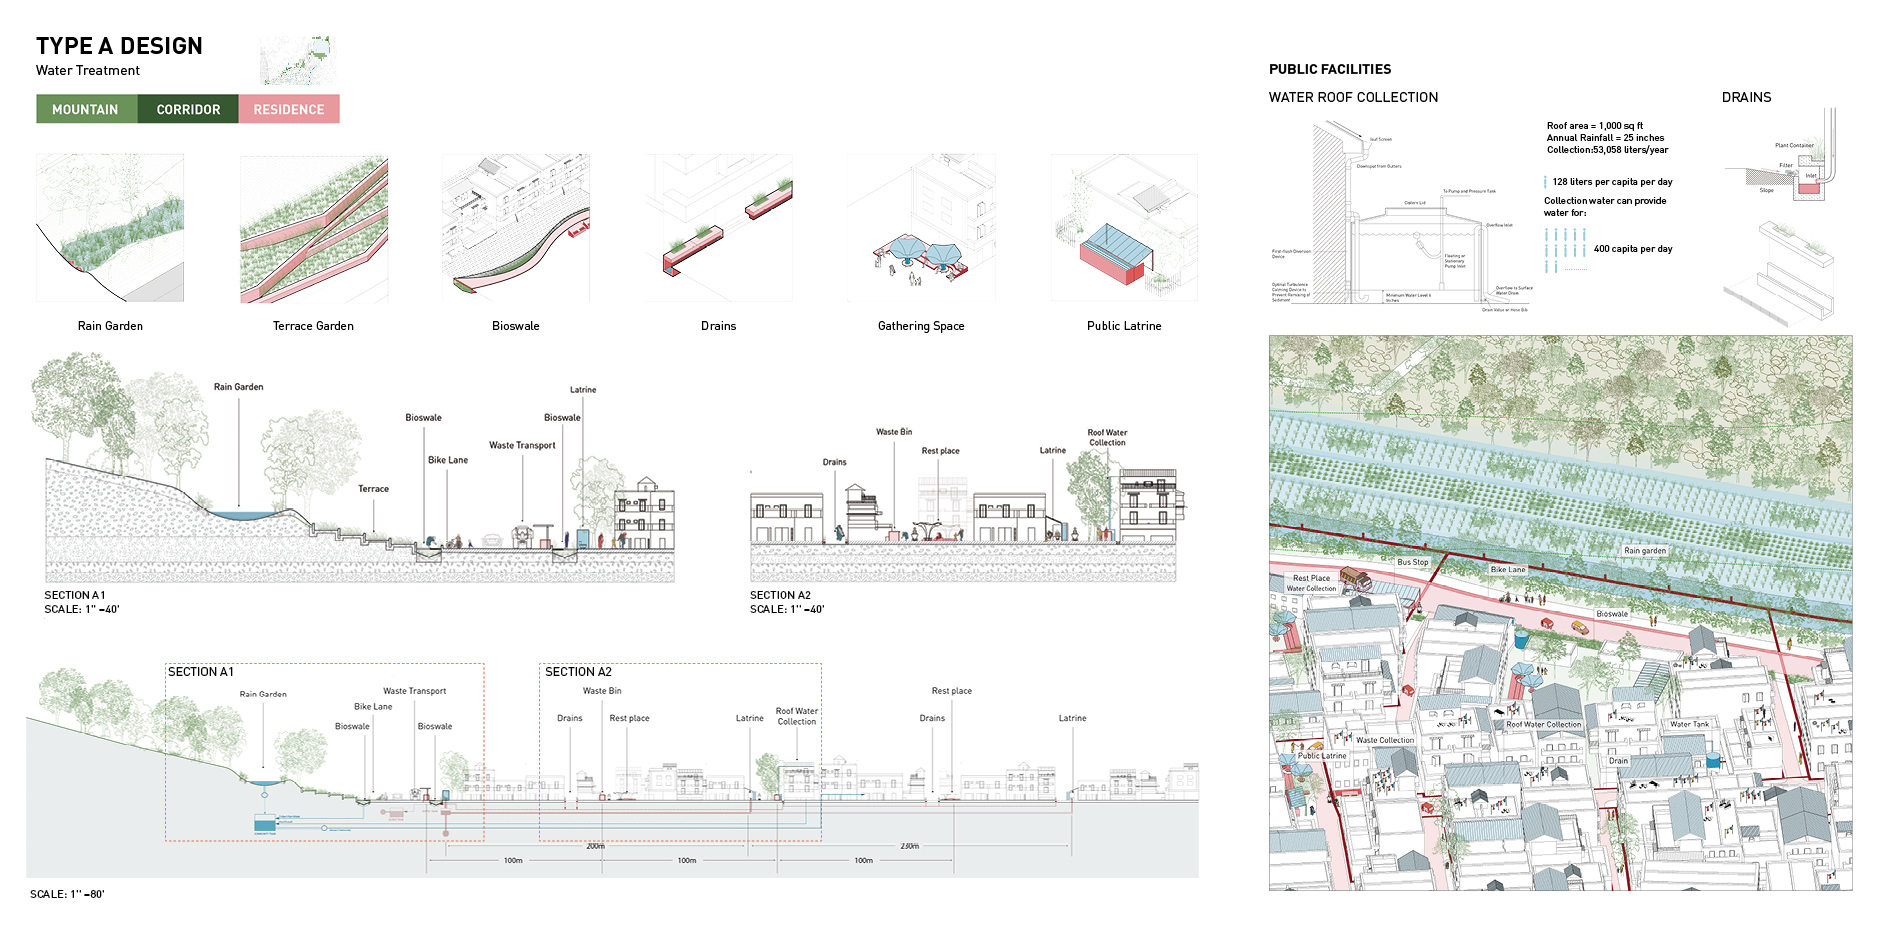 Type A Design: Between Hill and Residential Area